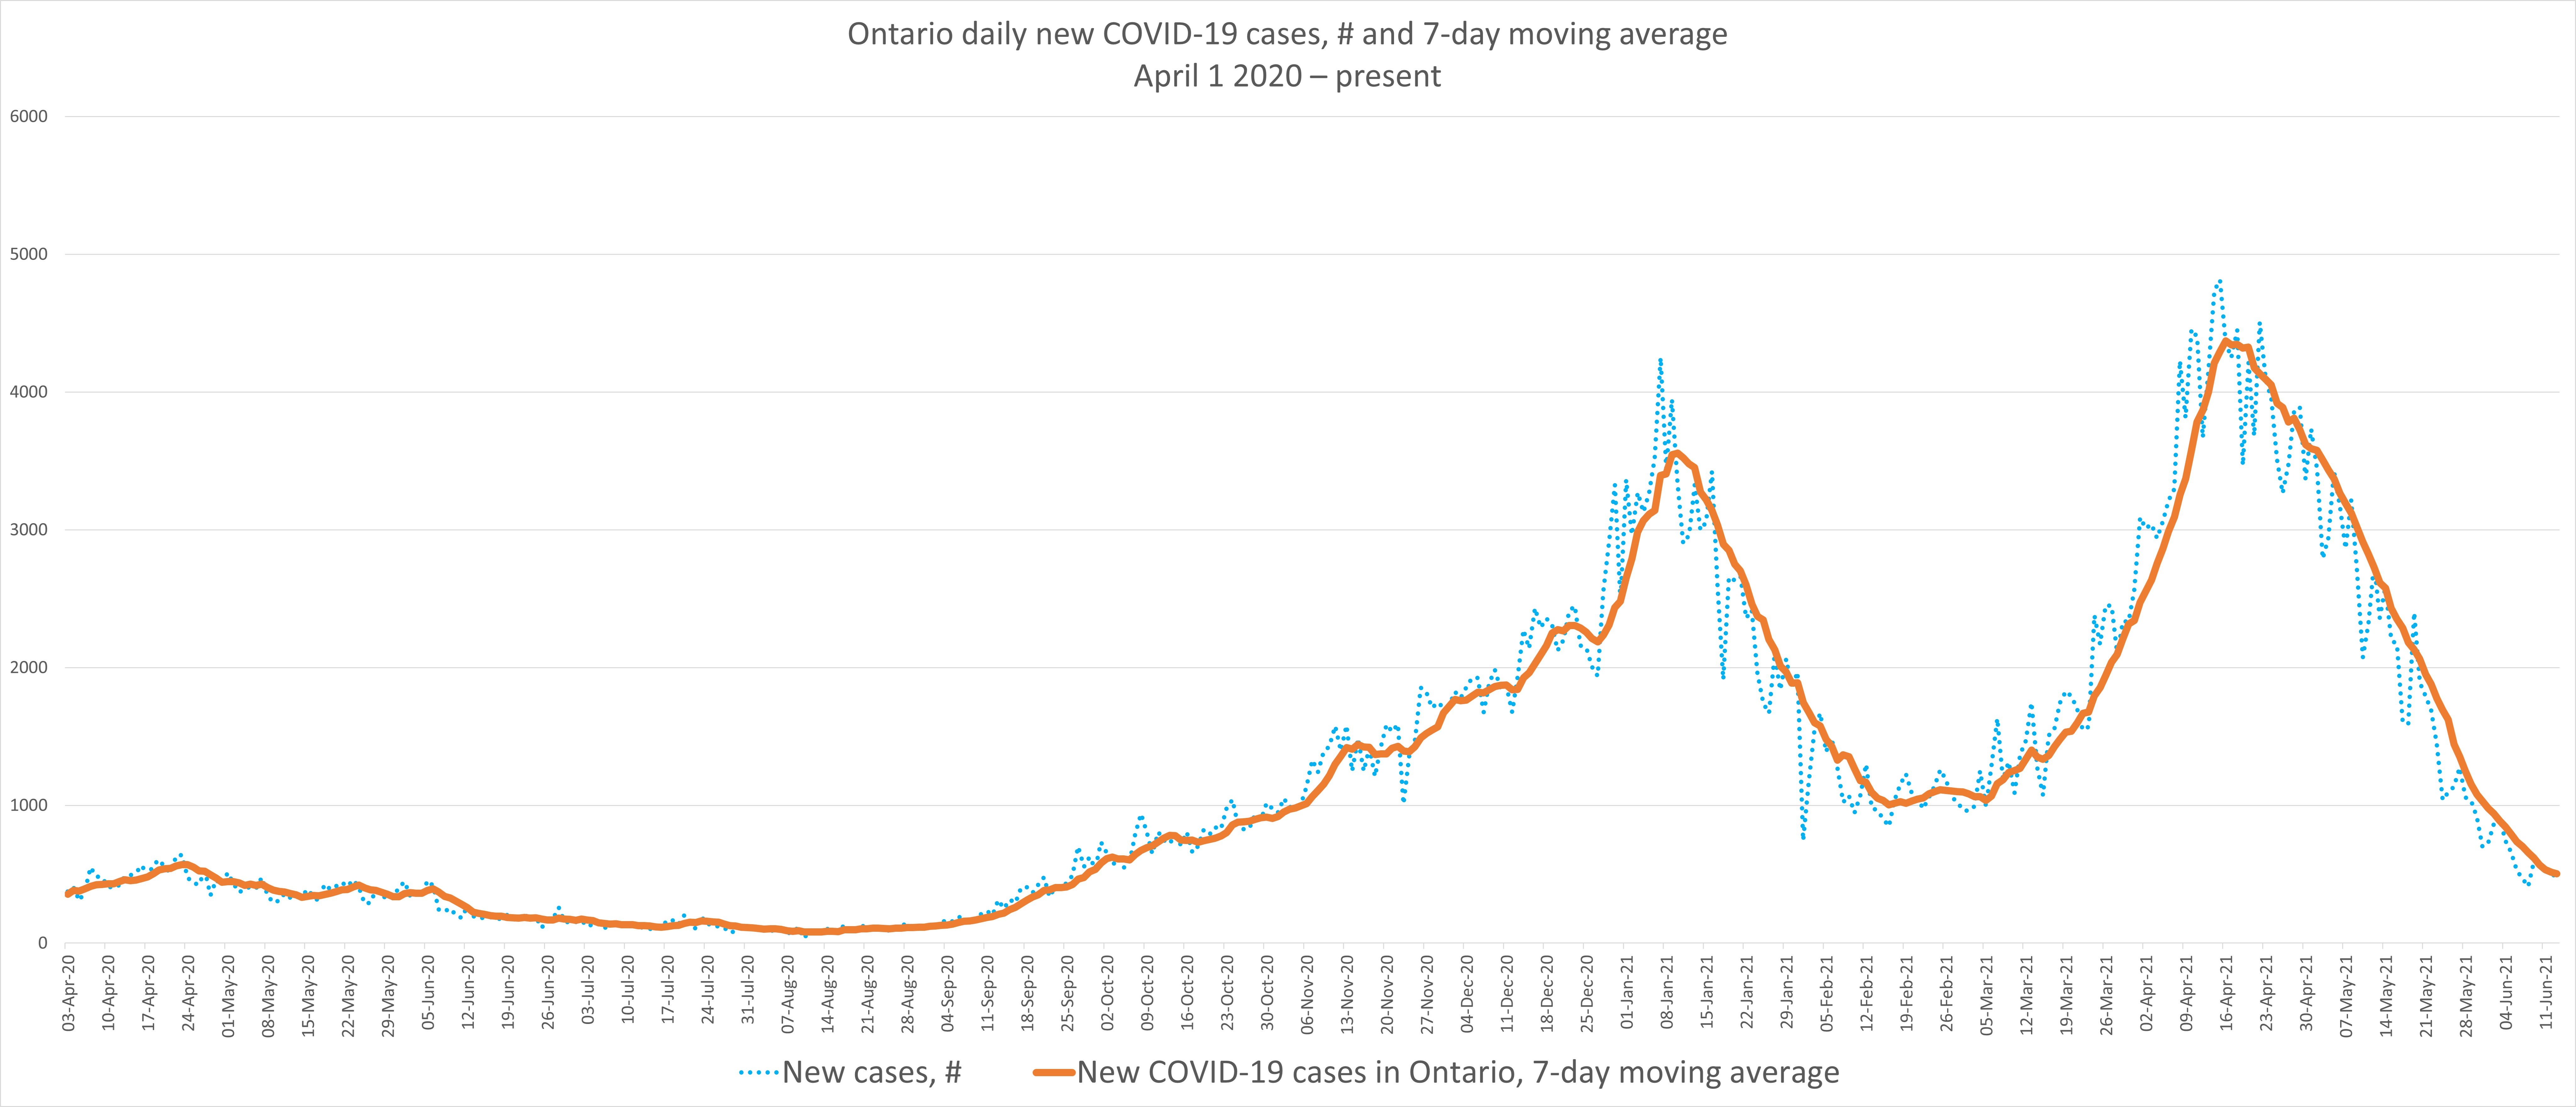 Graphs showing COVID-19 data in Ontario